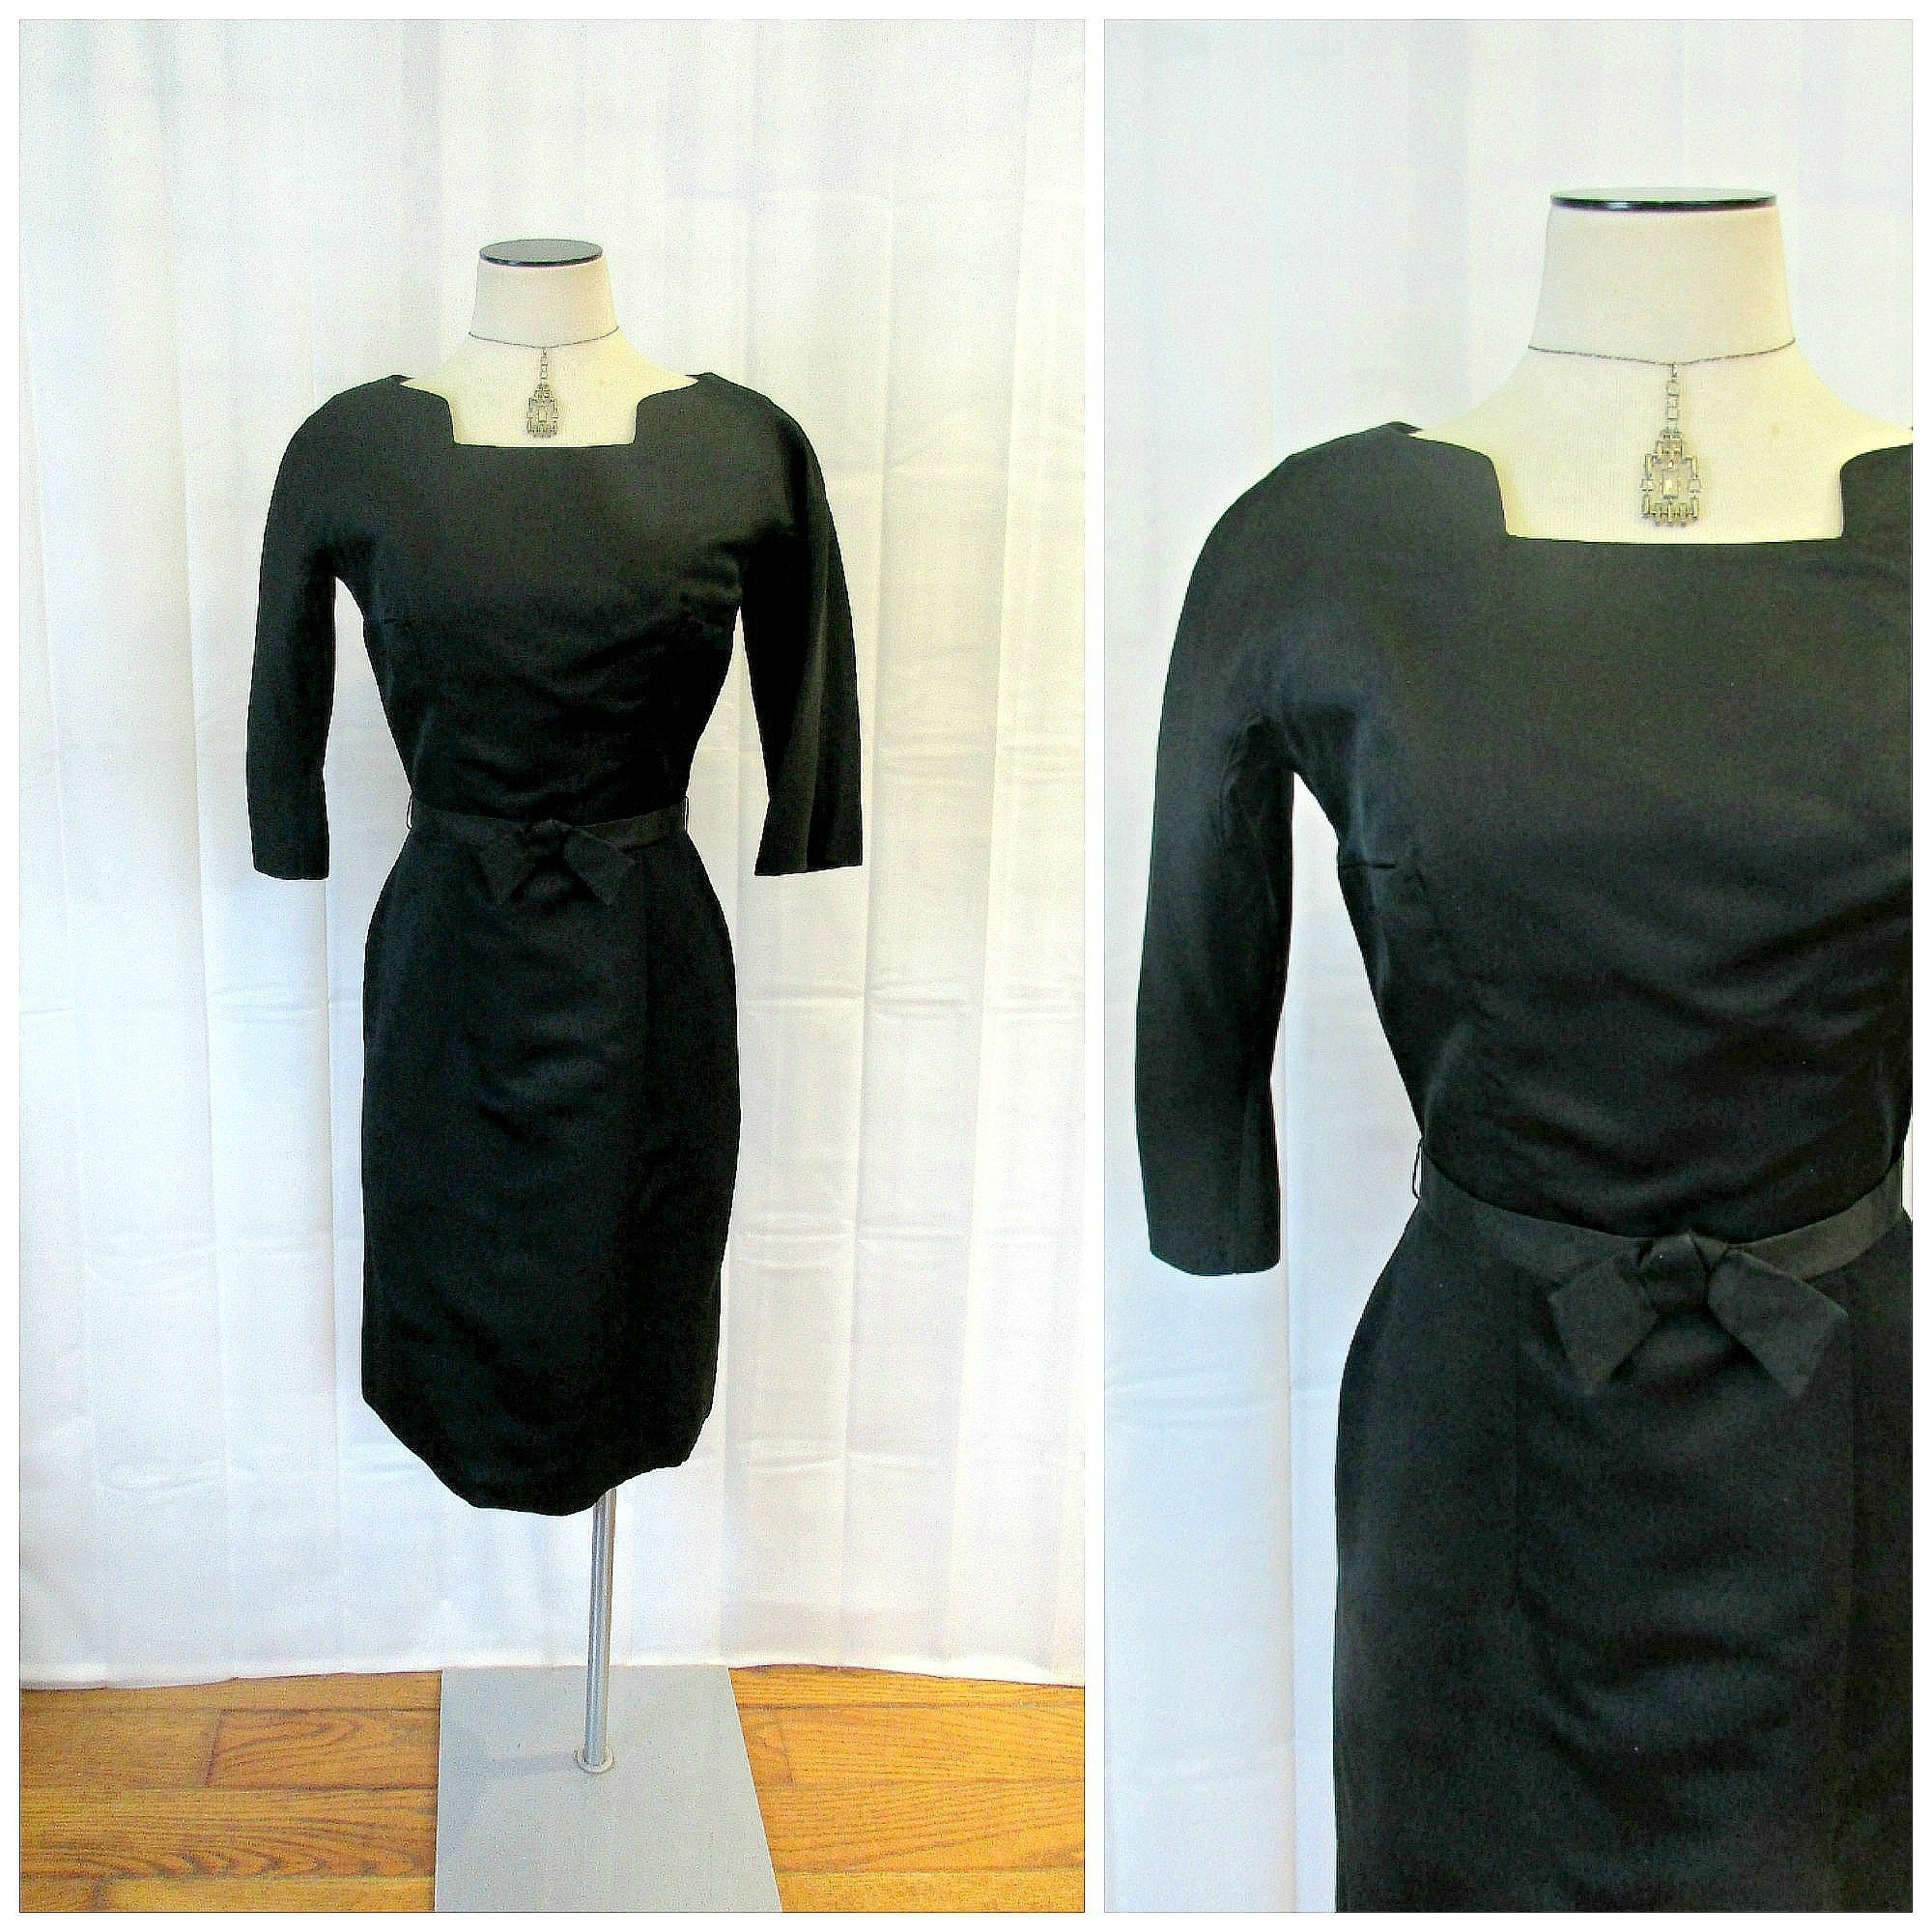 60s -70s Jewelry – Necklaces, Earrings, Rings, Bracelets Vintage Suzy Perette Dress Black 1950S 1960S Frock 34 Bust Bow Belt Cocktail Party New Look lbd 24-12 Inch Waist S M Hourglass $158.00 AT vintagedancer.com